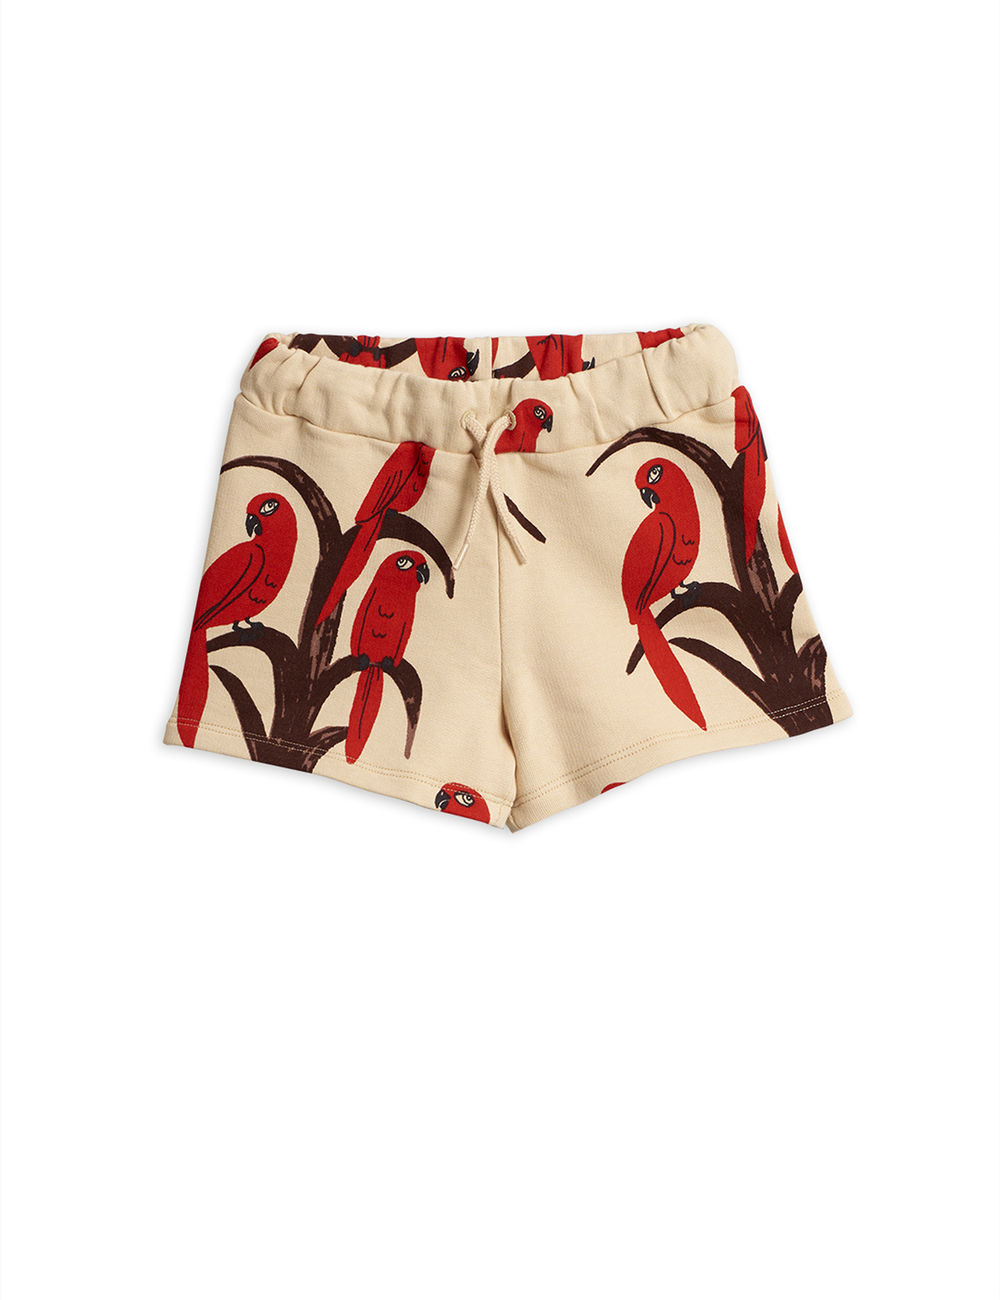 MINI RODINI PARROT AOP SHORTS, RED